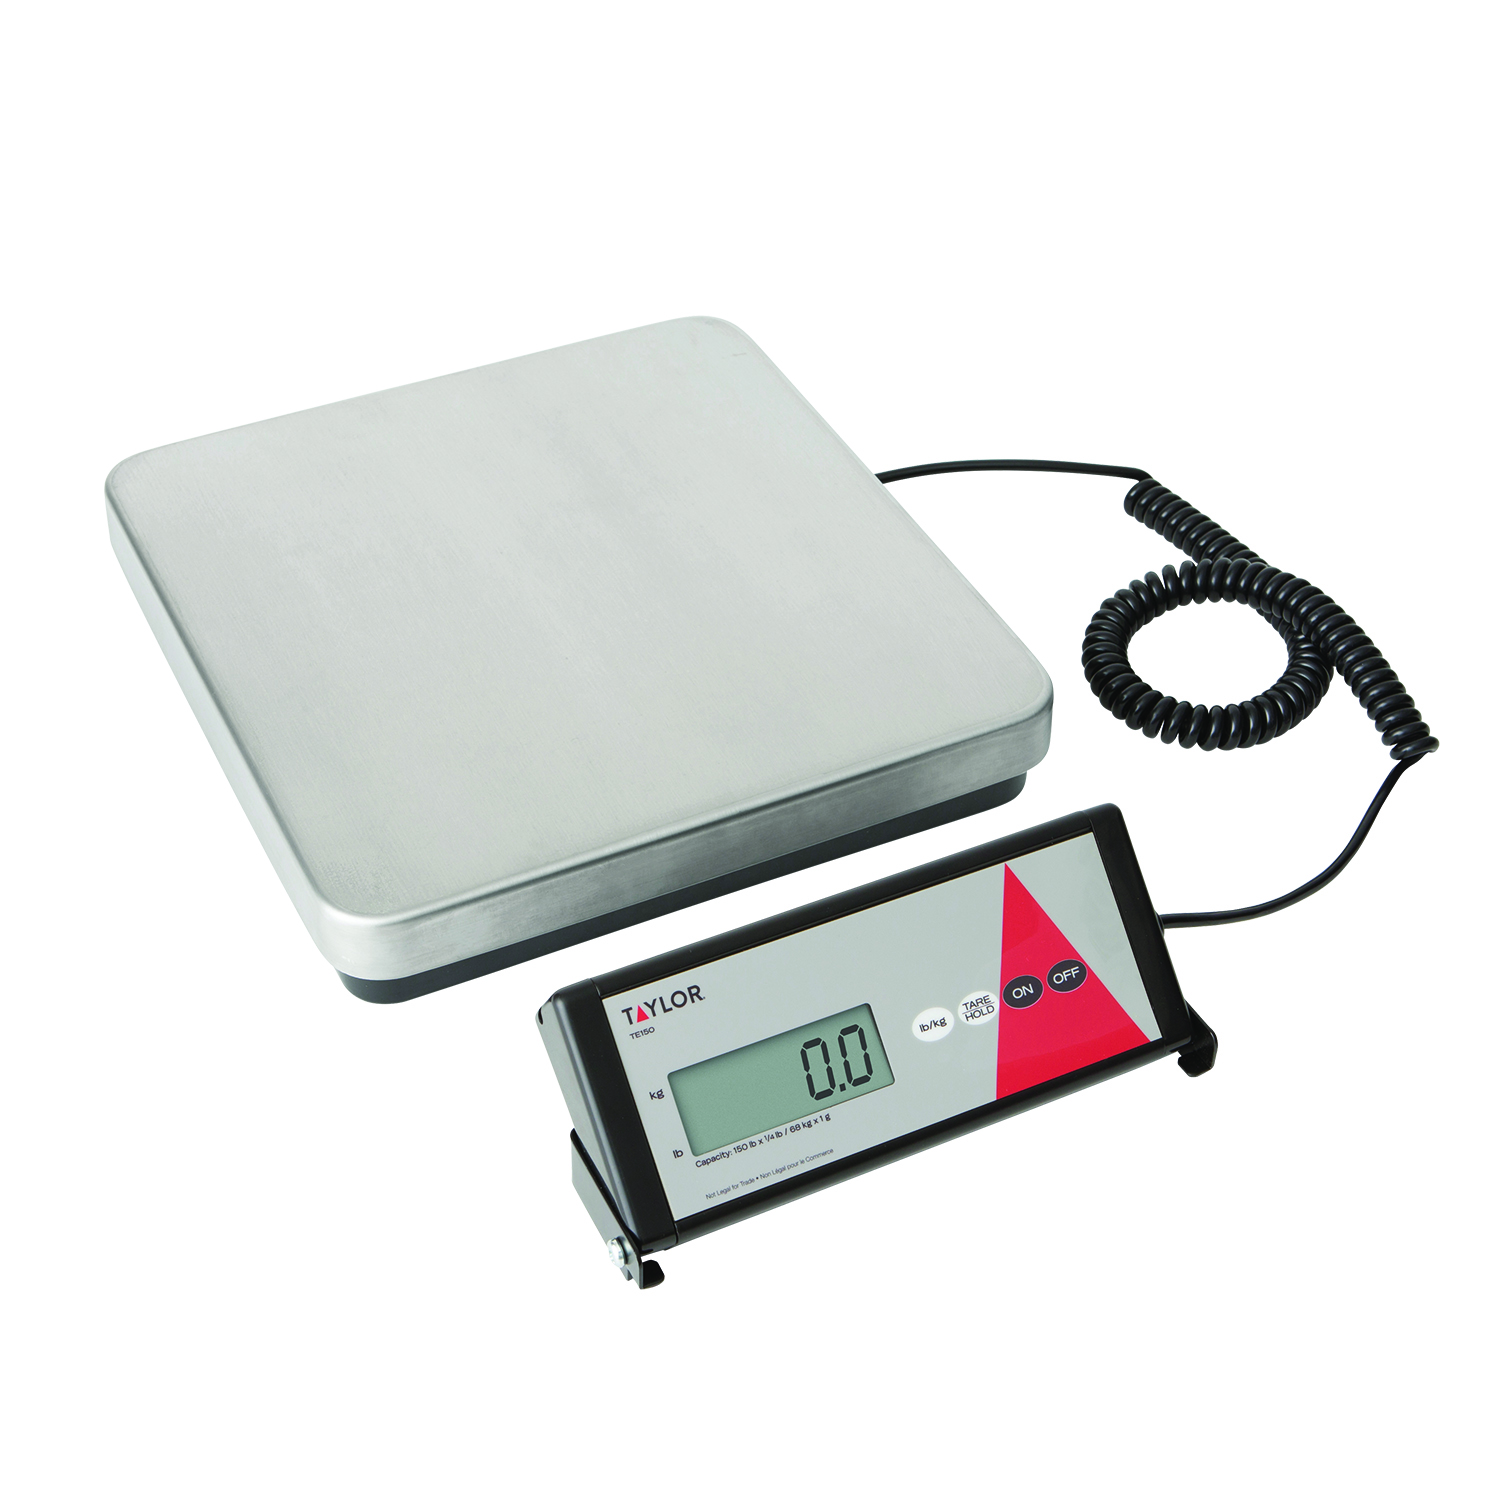 Taylor Precision TE150 scale, receiving, digital